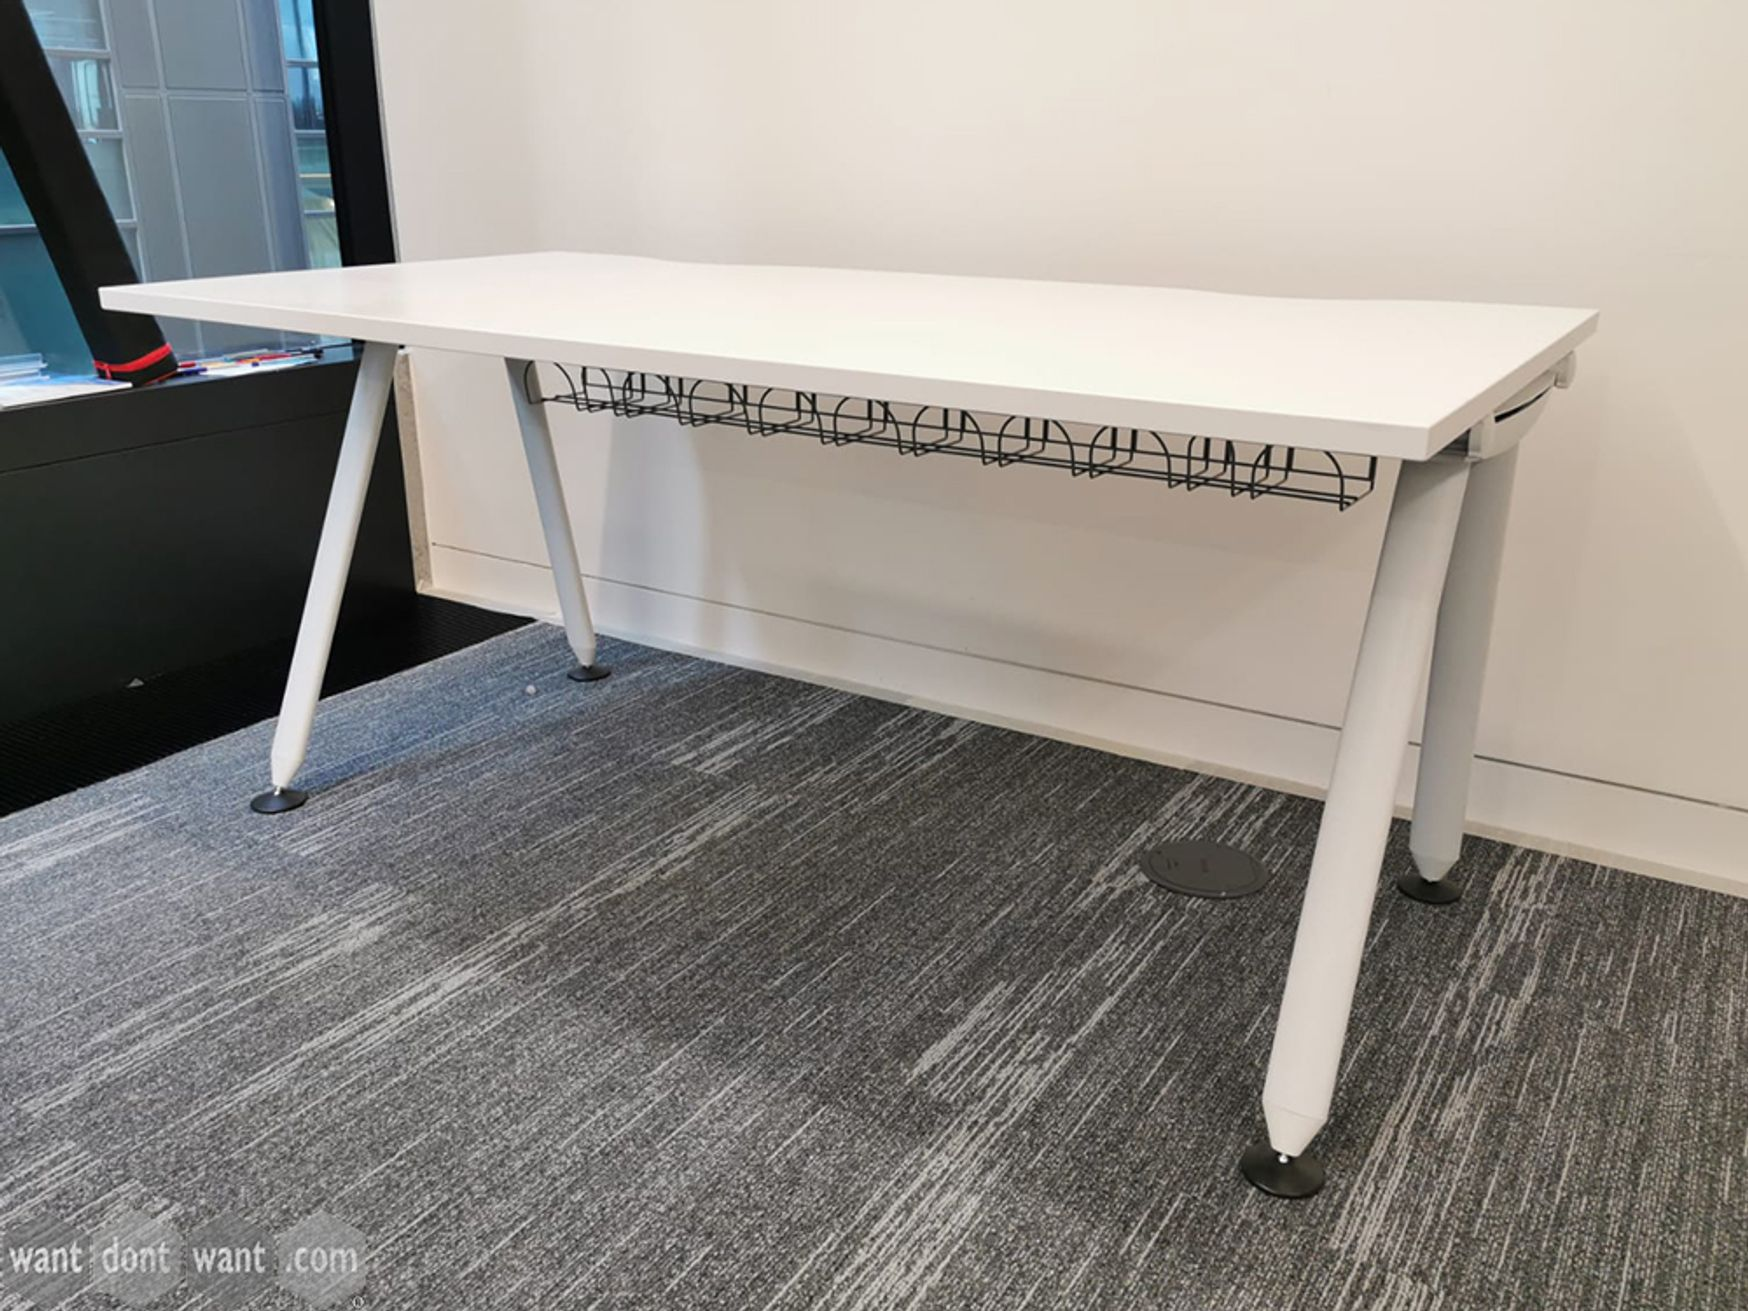 Used White Herman Miller Abak Desks with White Legs and Cable Trays